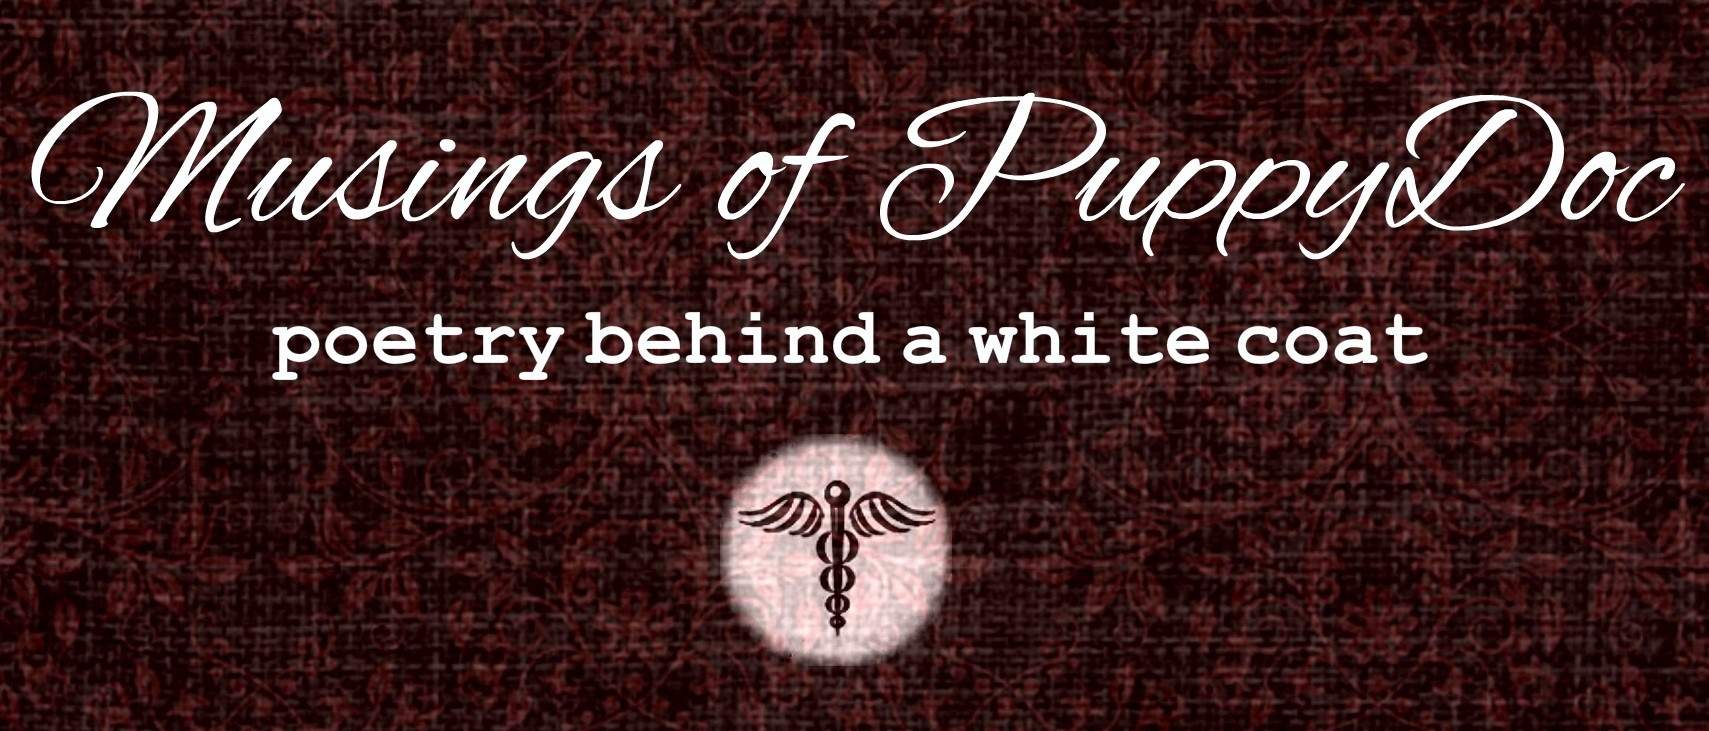 Musings of puppydoc - Poetry behind a white coa